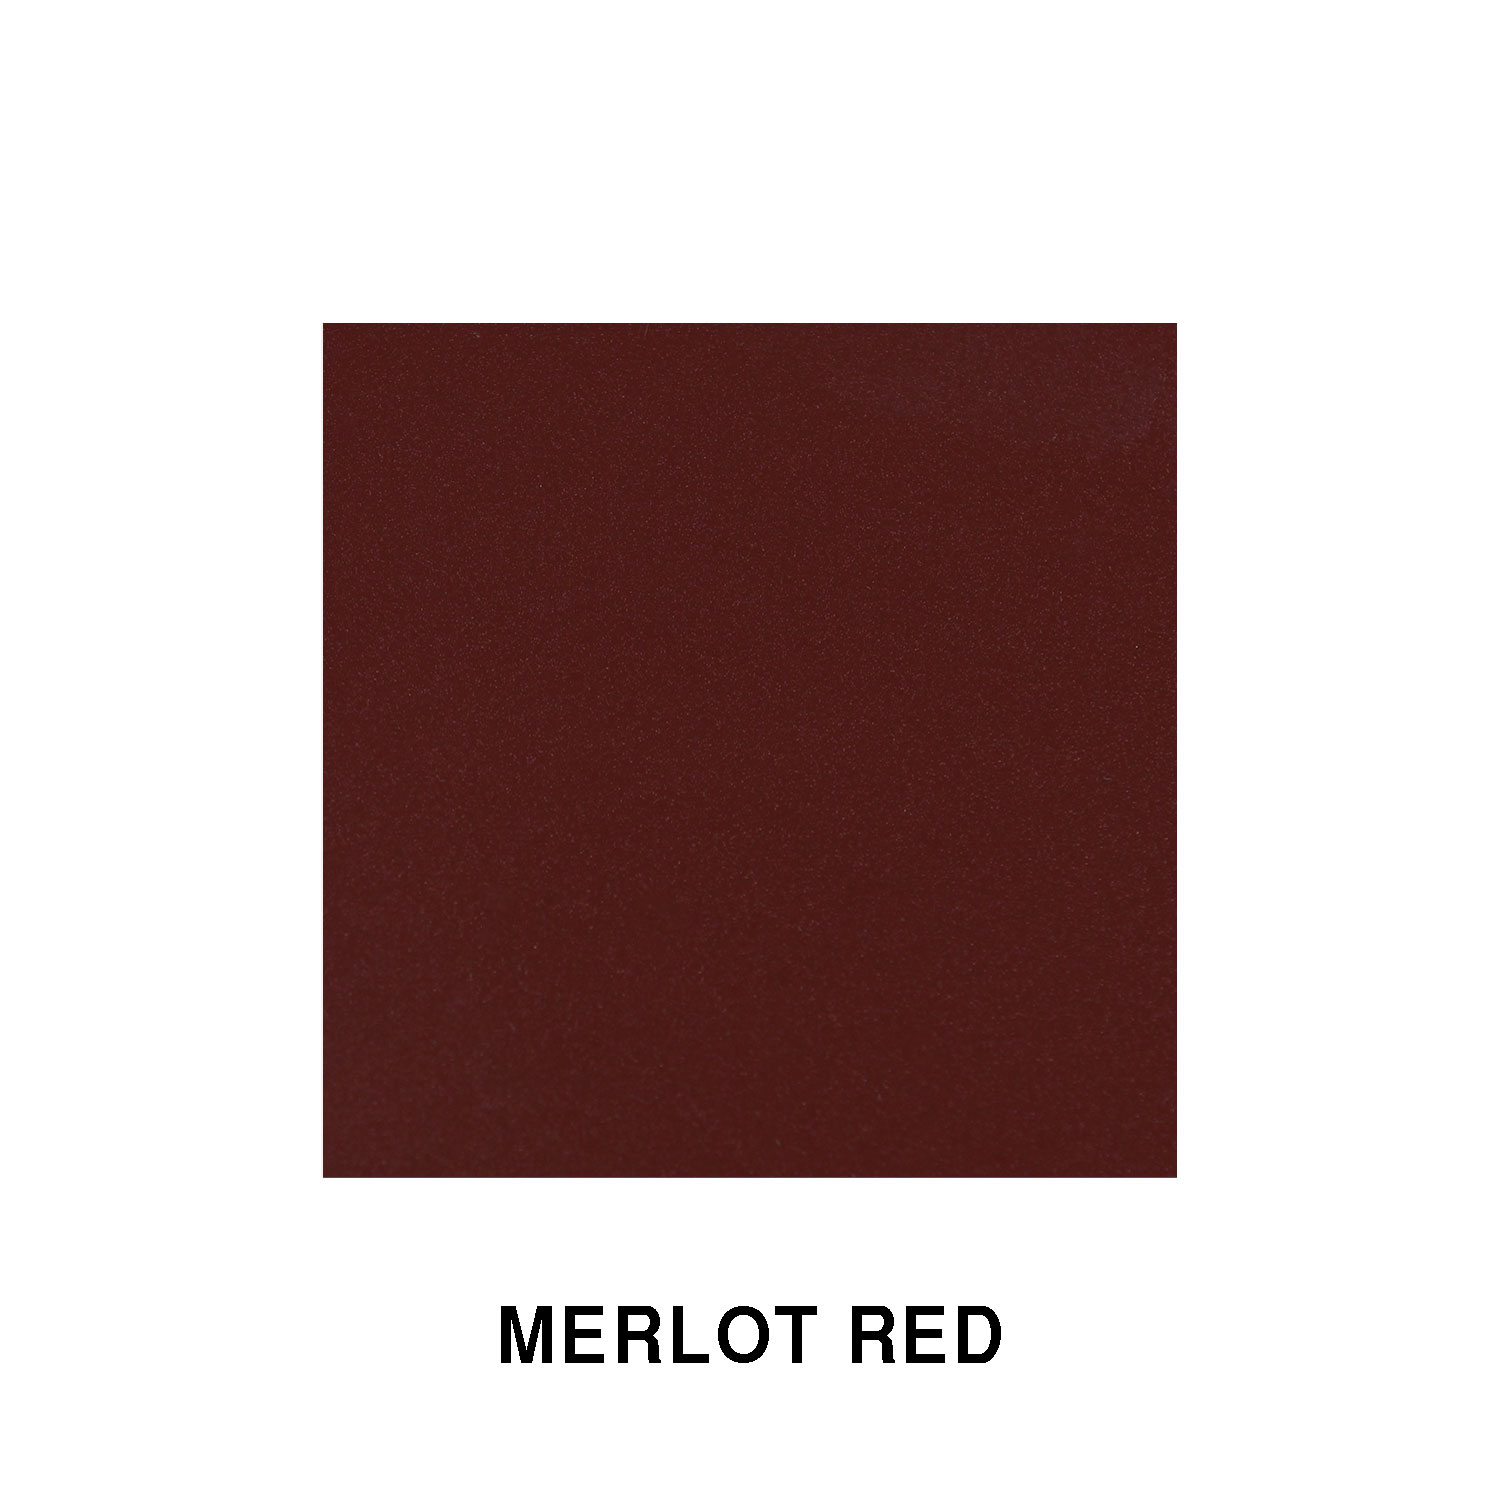 Merlot Red Fiberglass Finish